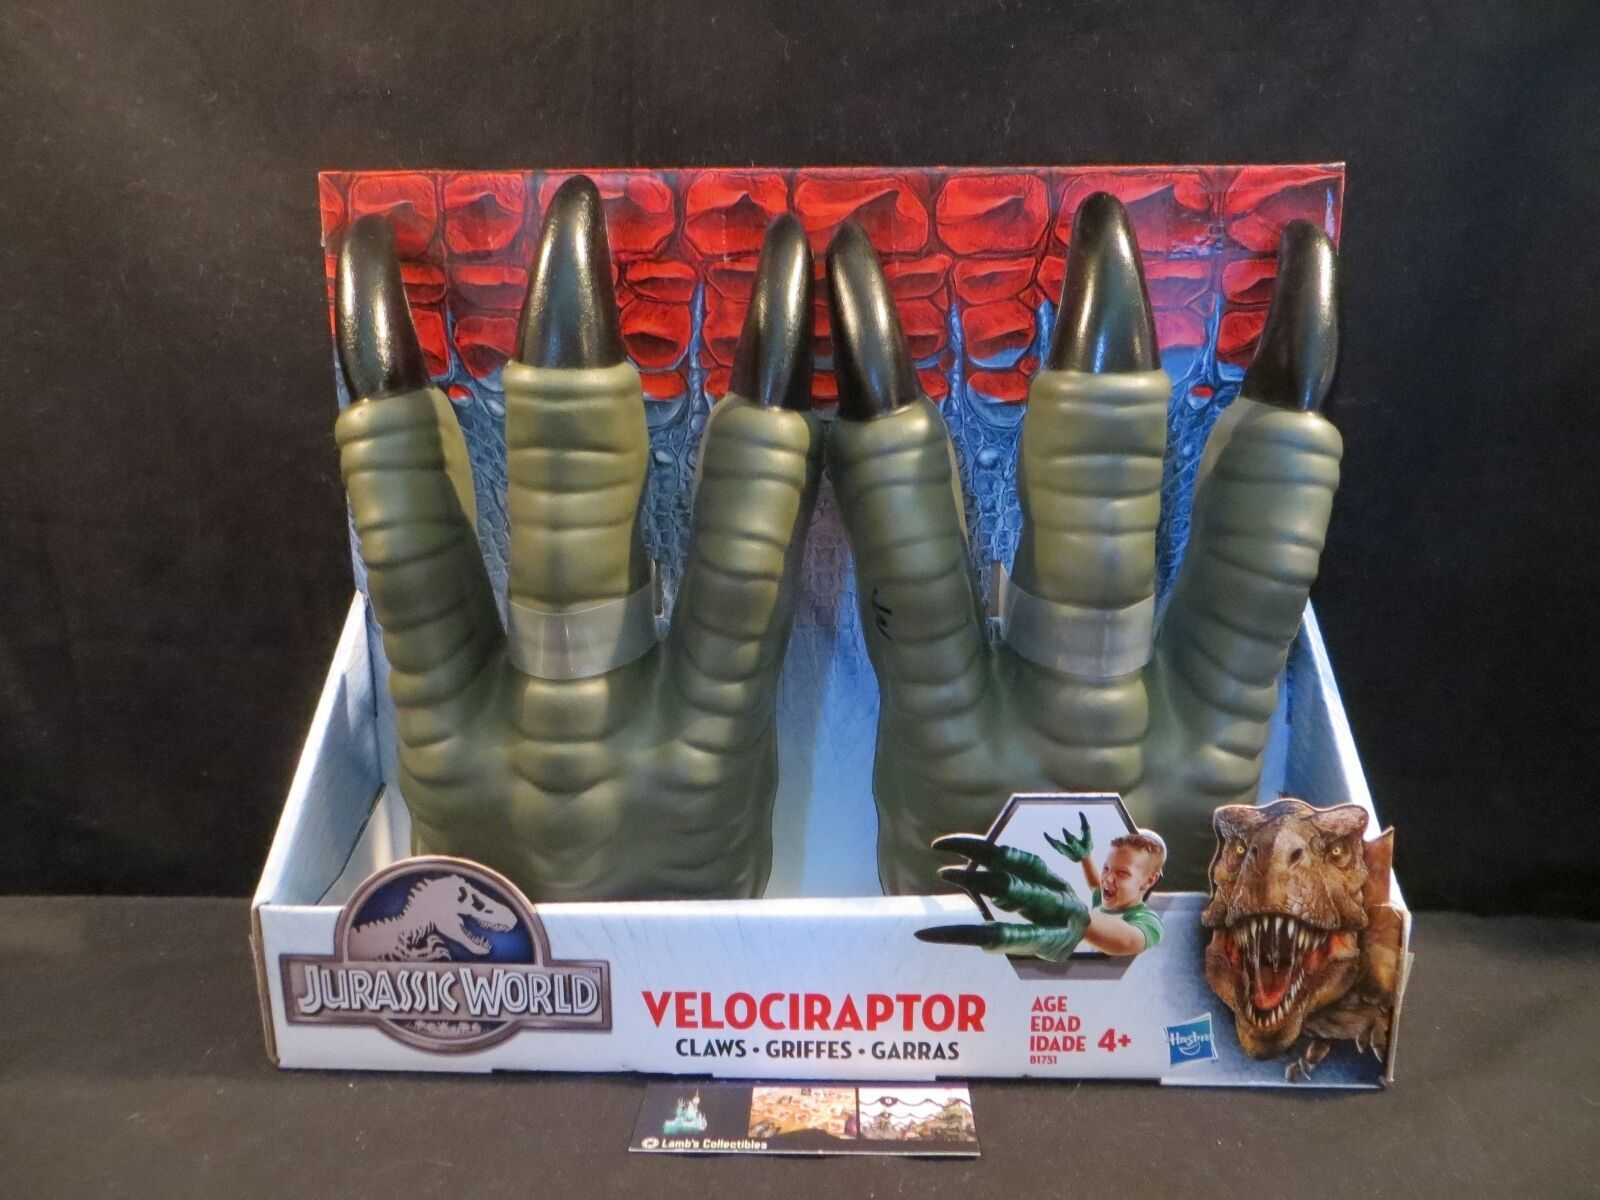 Primary image for Jurassic World velociraptor claws Hasbro Raptor pretend play dinosaur costume